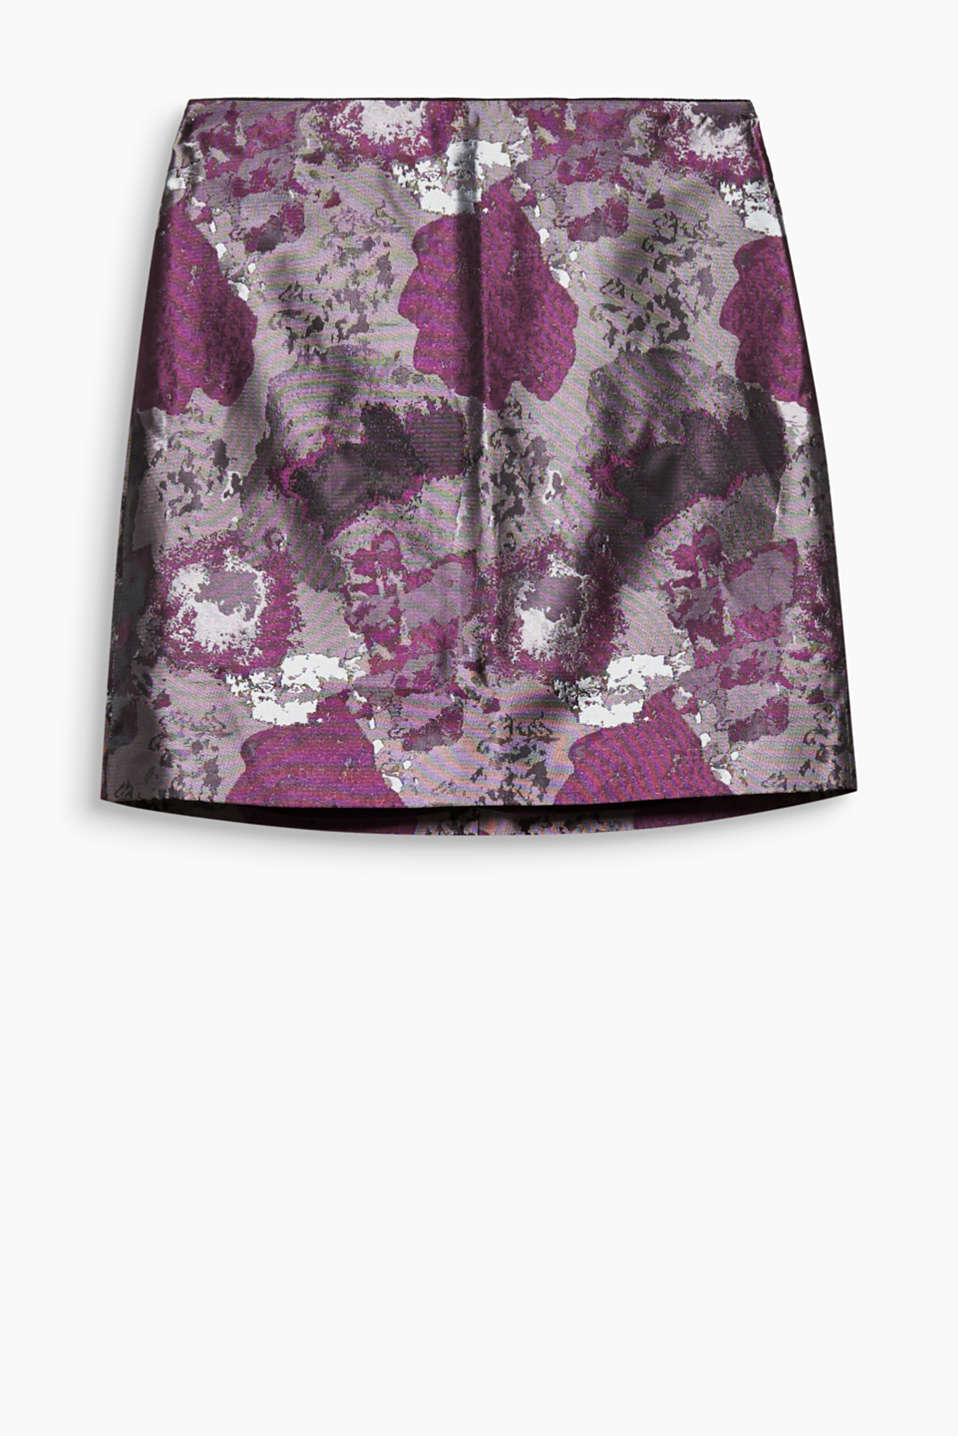 The iridescent sheen and abstract floral pattern make this elegant mini skirt completely irresistible!